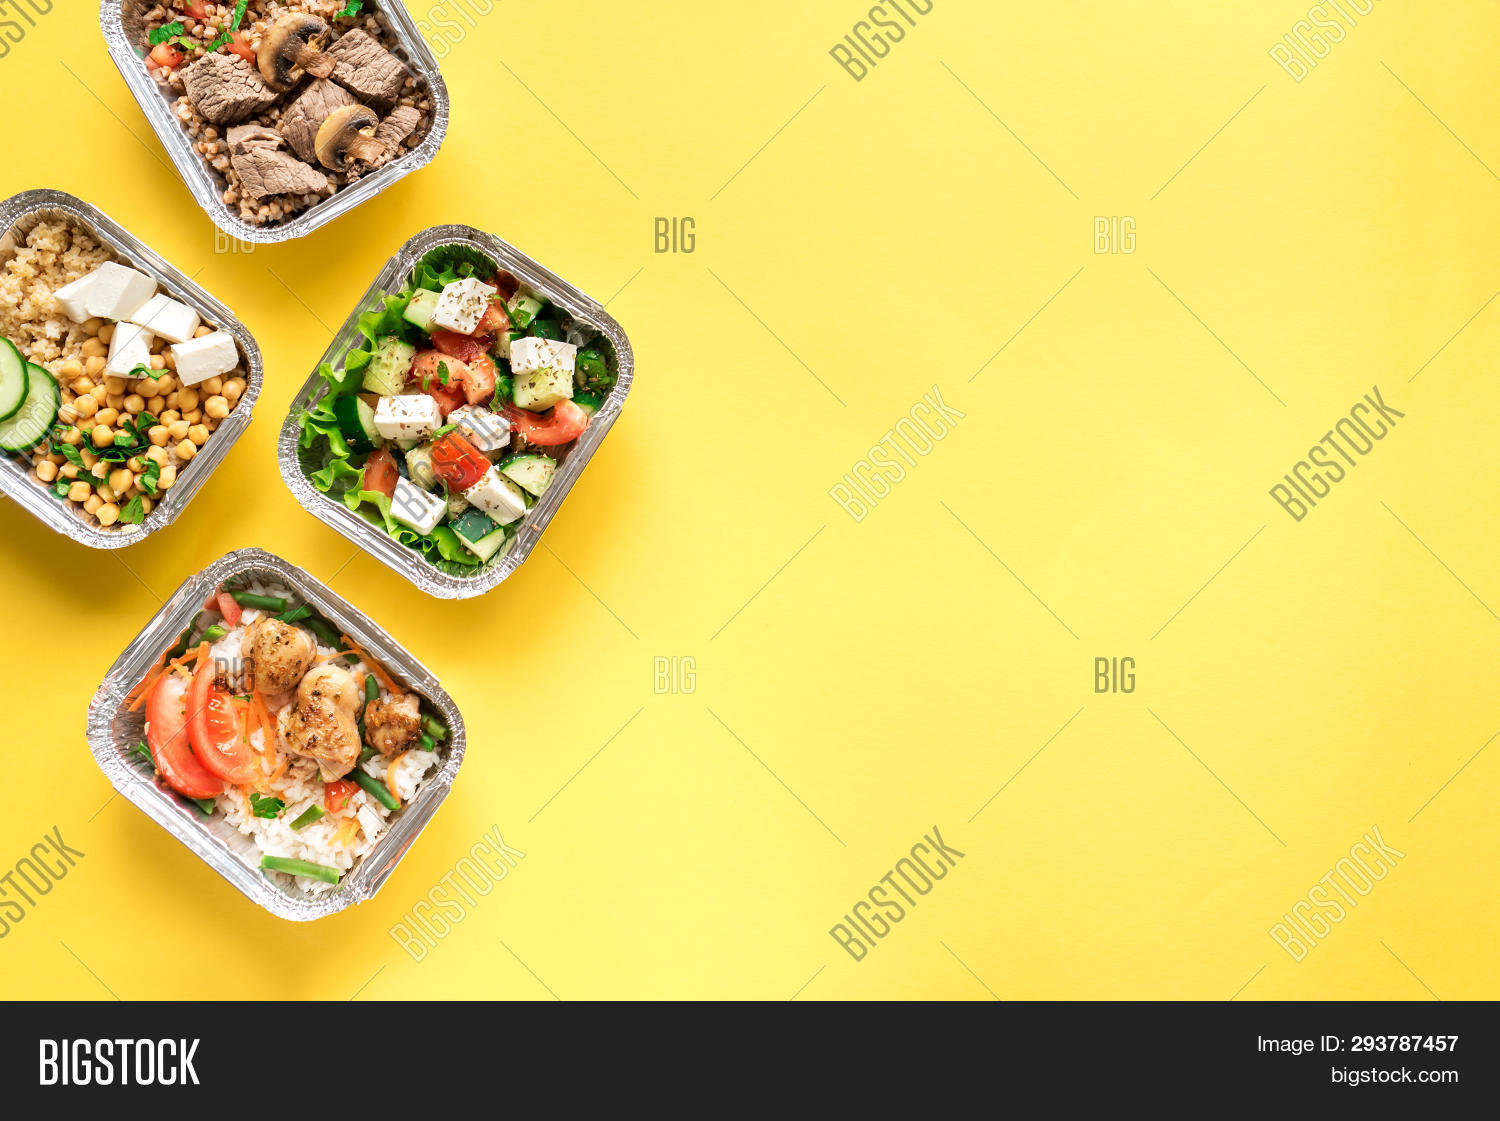 assortment,away,background,box,circle,clean,concept,container,copy,cuisine,daily,delivery,diet,dinner,eating,fitness,foil,food,fresh,healthy,lifestyle,loss,lunch,meal,meat,menu,natural,nutrition,online,order,organic,plan,planning,restaurant,salad,service,space,take,top,vegetable,view,water,week,weight,yellow